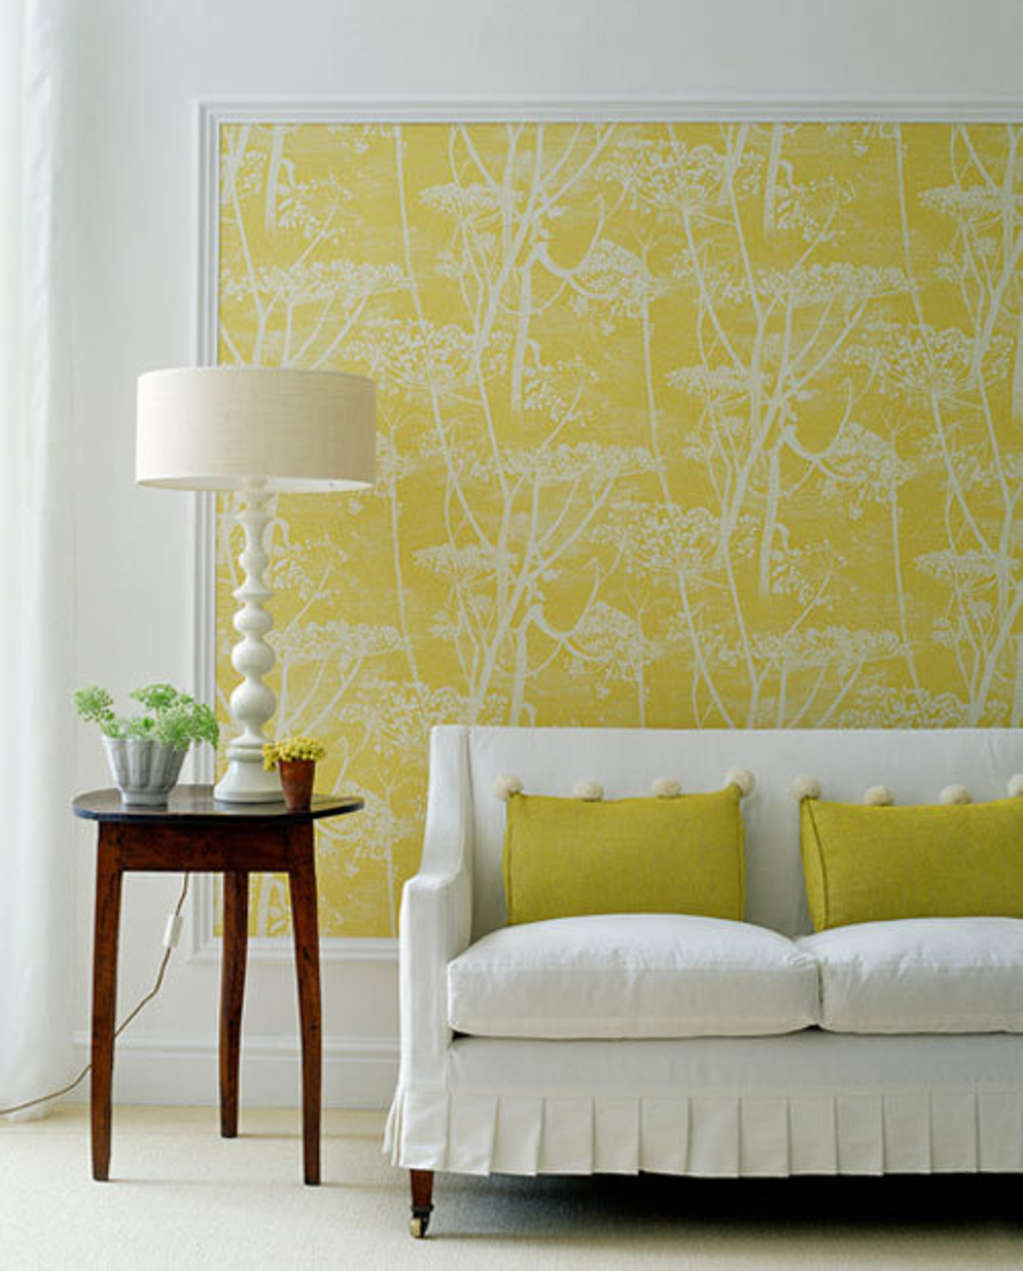 Moulding-Framed Wallpaper   Apartment Therapy